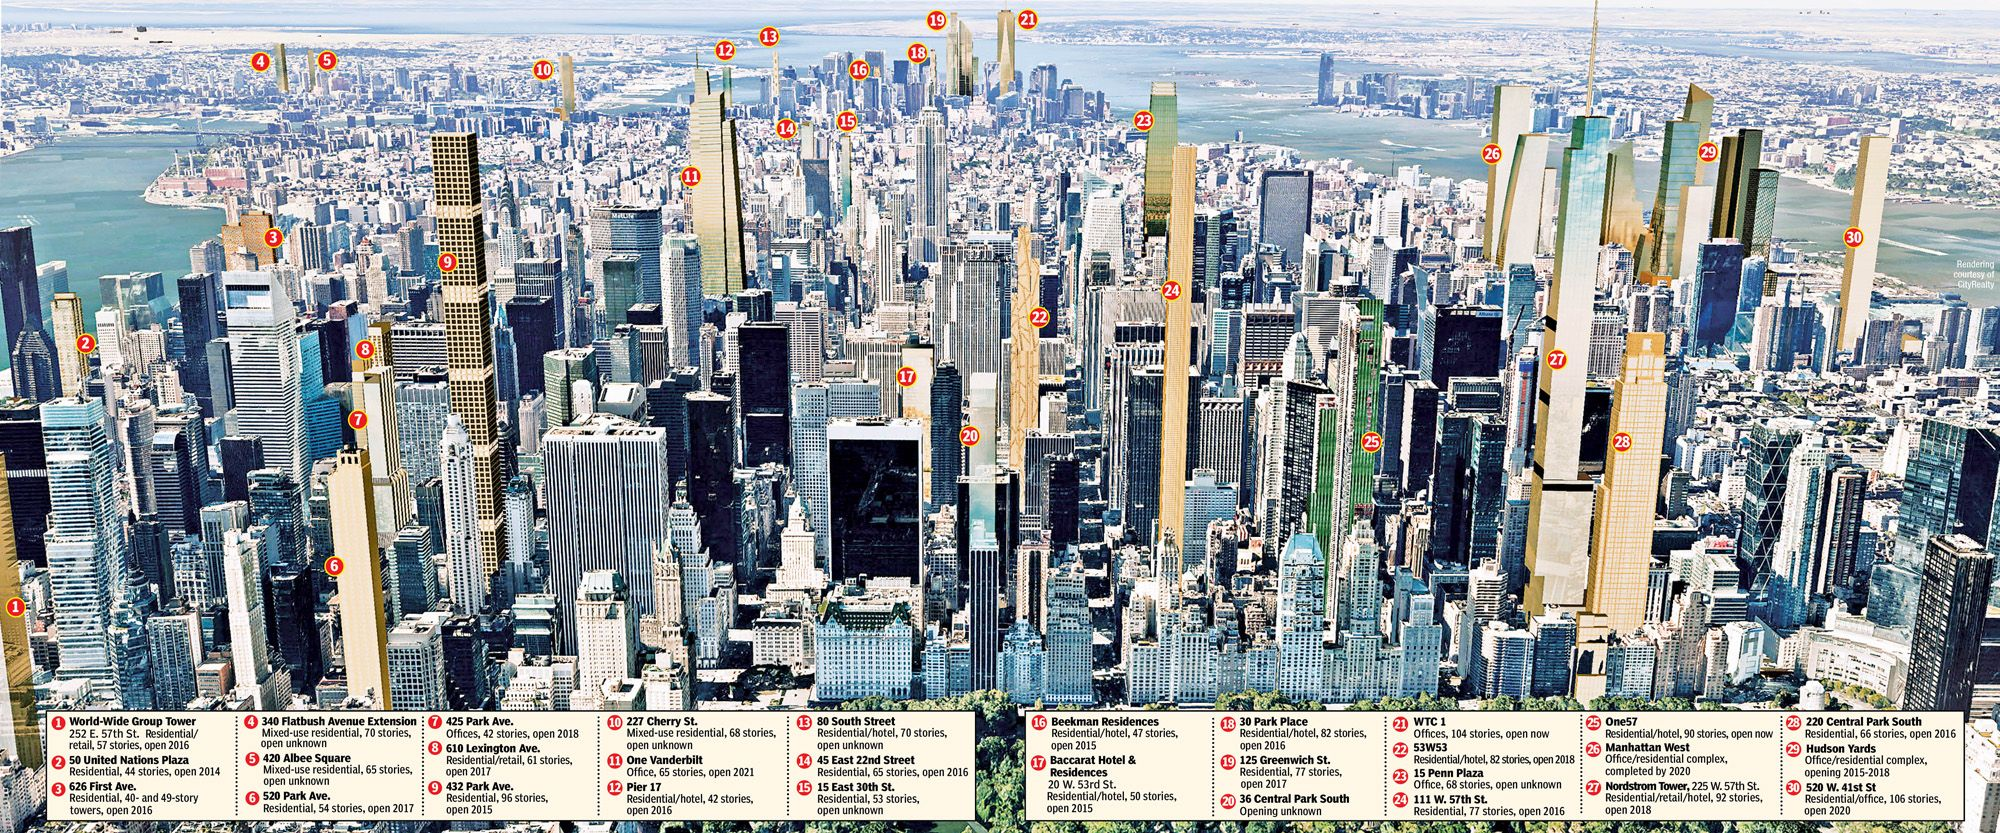 Nyc S Skyline Will Be Radically Different In 2018 Skyline Nyc Skyline New York Skyline